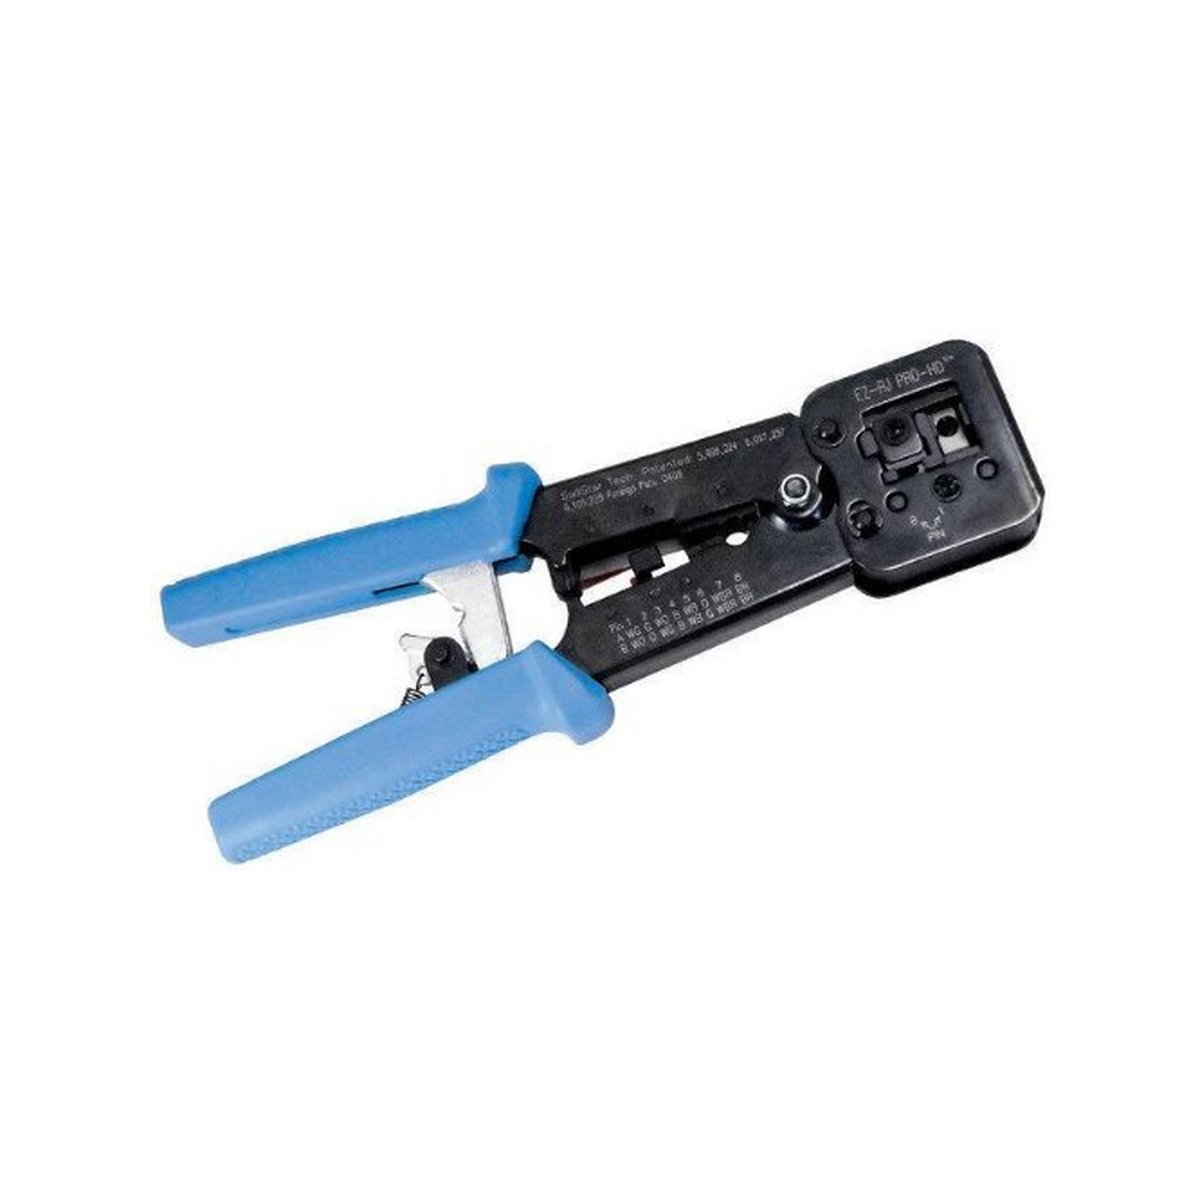 Platinum Tools 100054CEZ-RJ PRO HD Crimp Tool.  Clamshell.